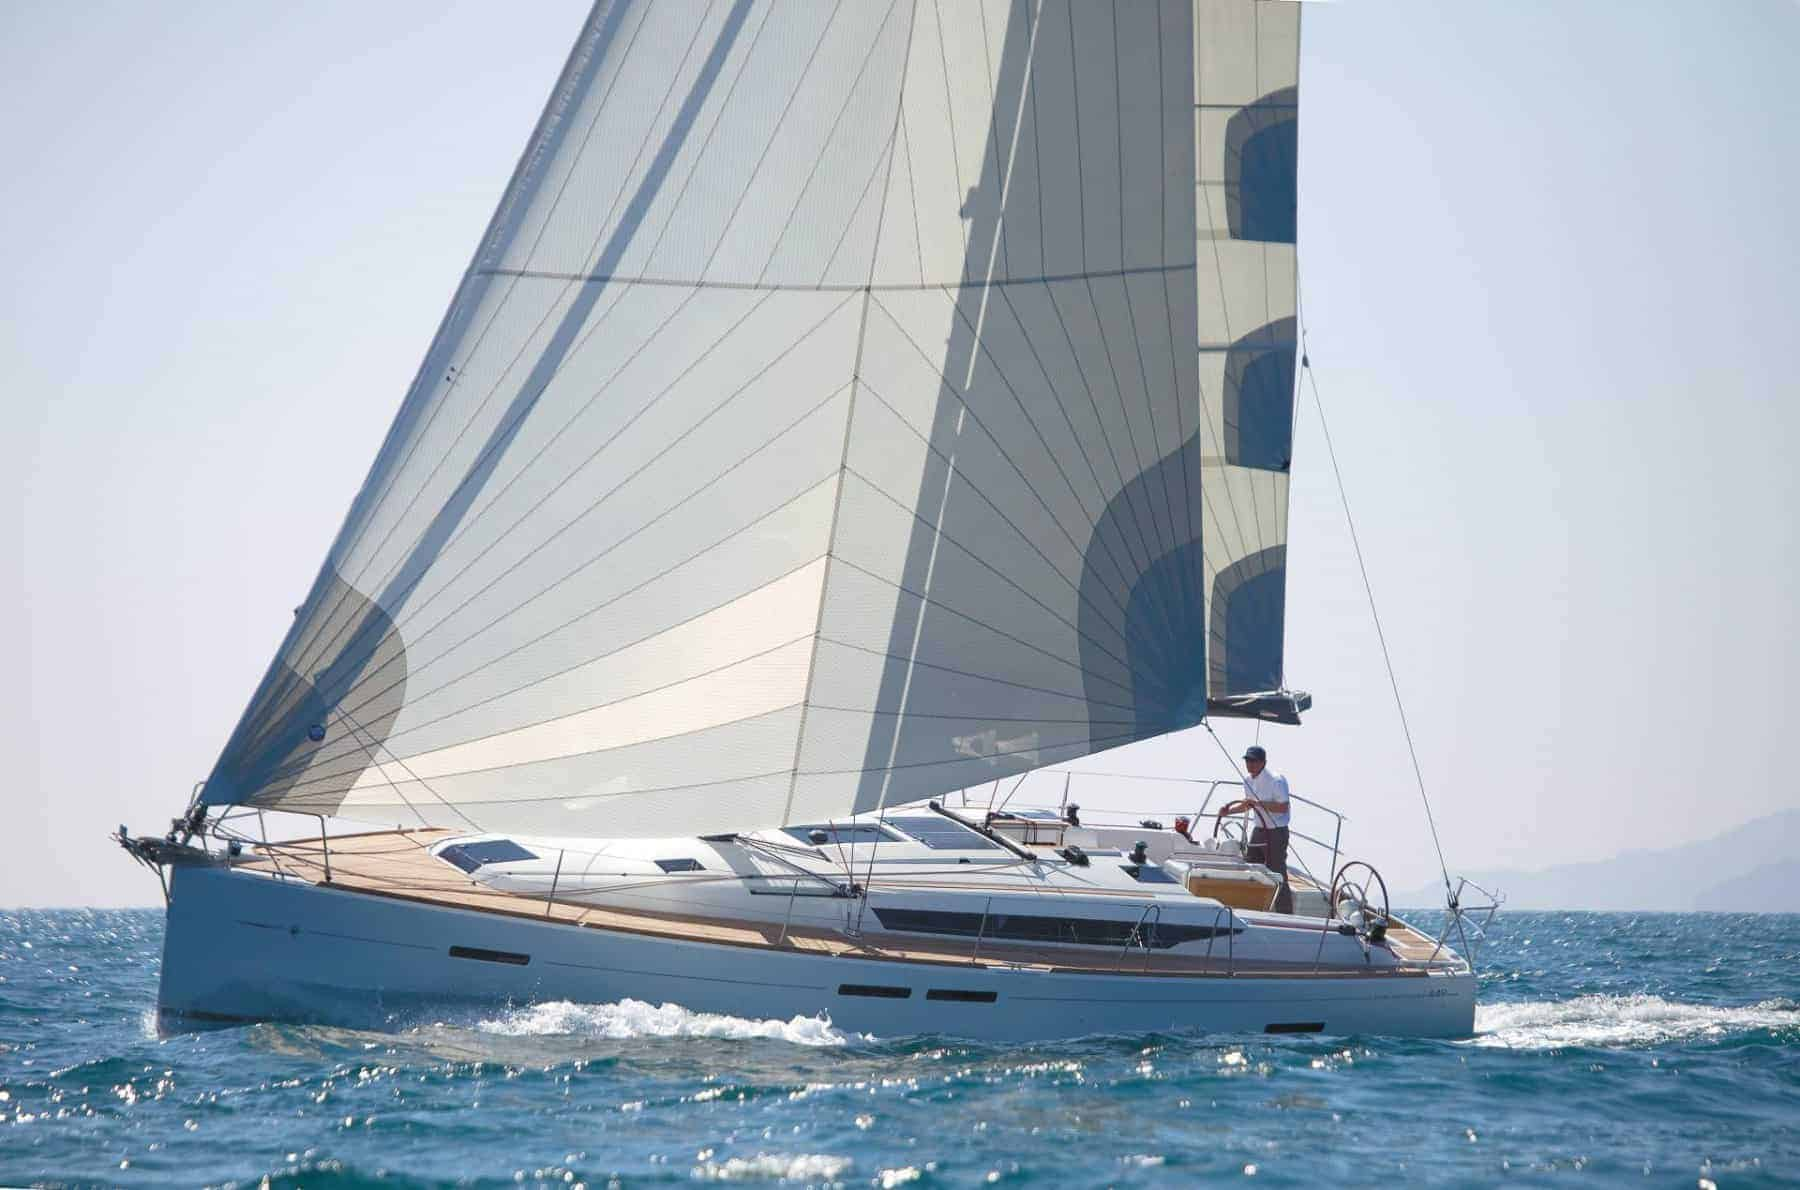 Jeanneau Sun Odyssey 449 in action a sunny day with a man at the steering wheel